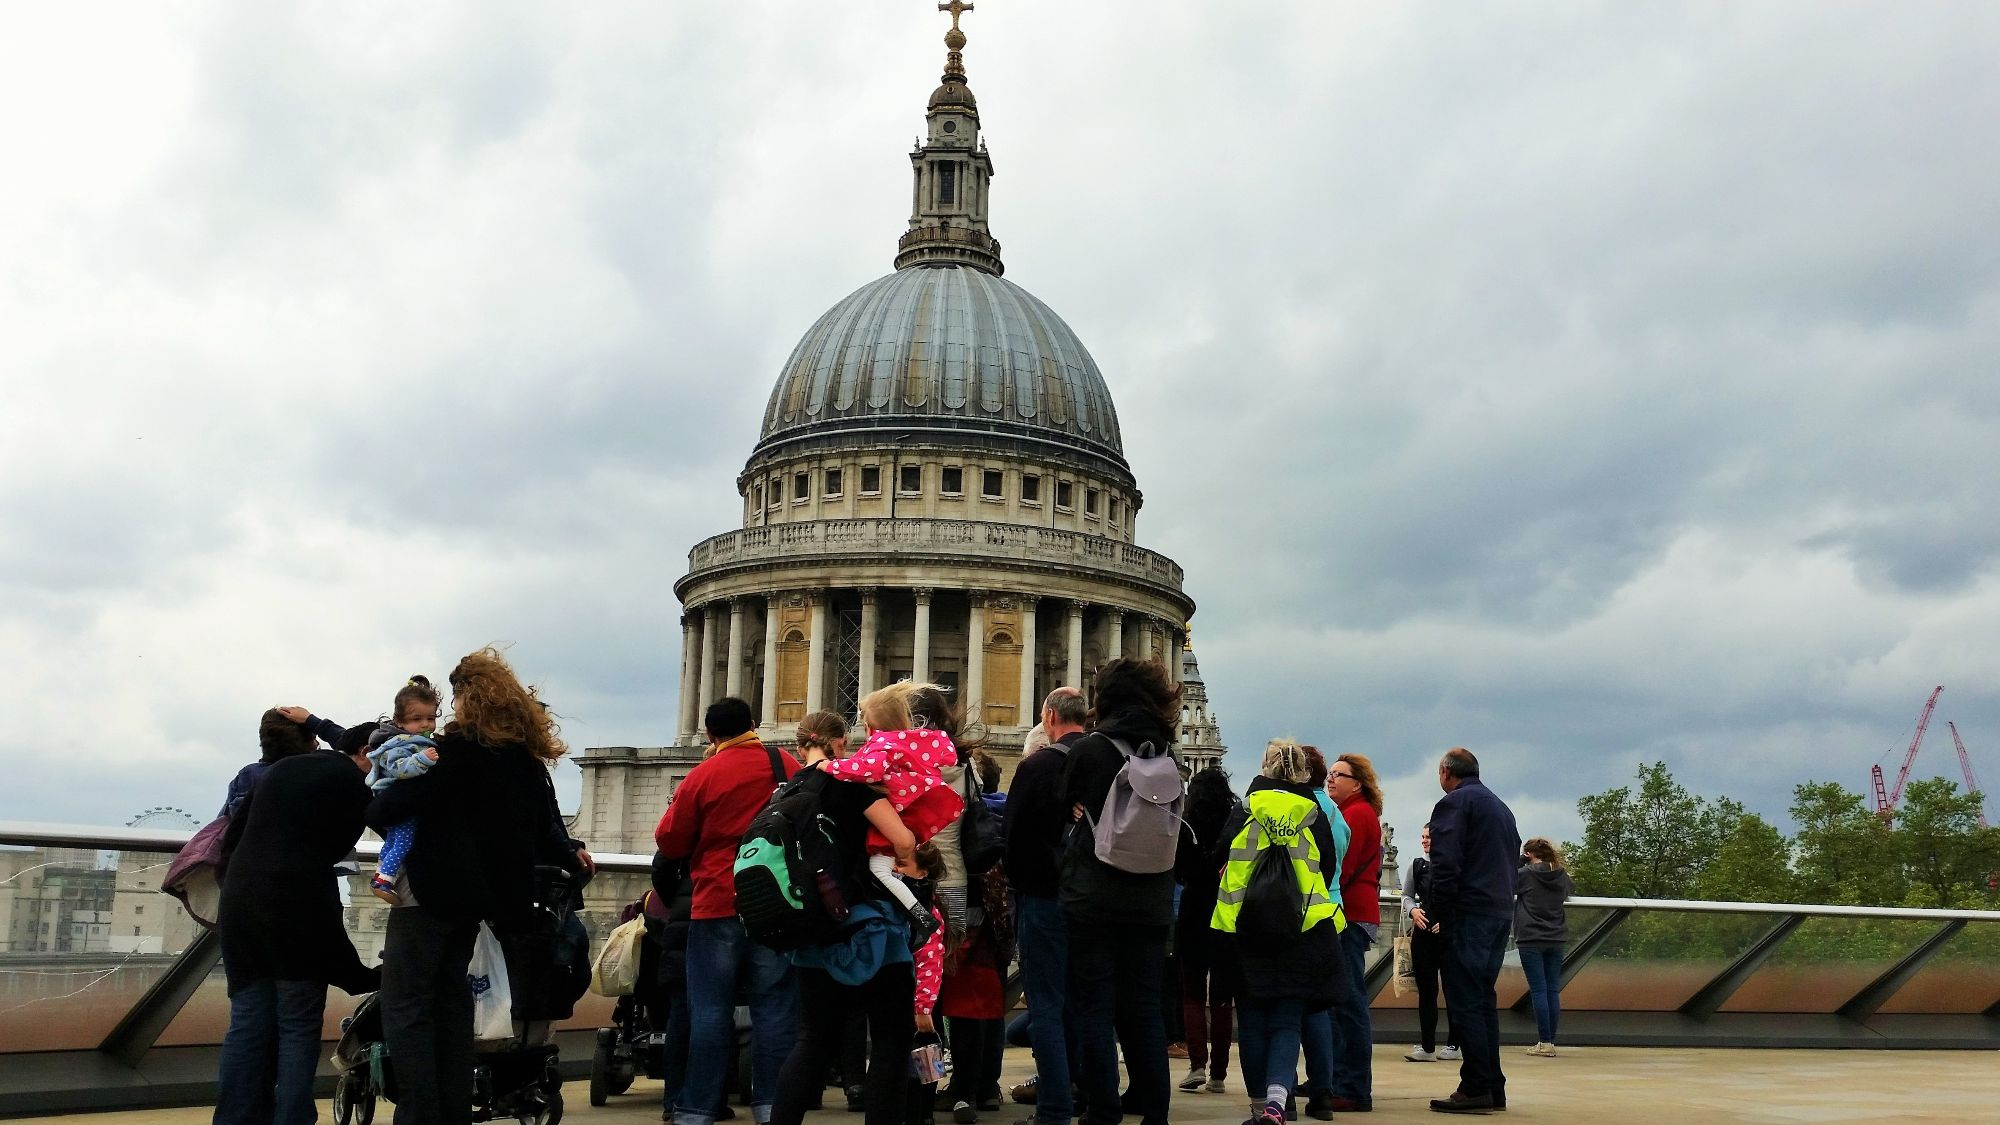 Photo of a group standing on a roof terrace and looking towards St Paul's Cathdral.